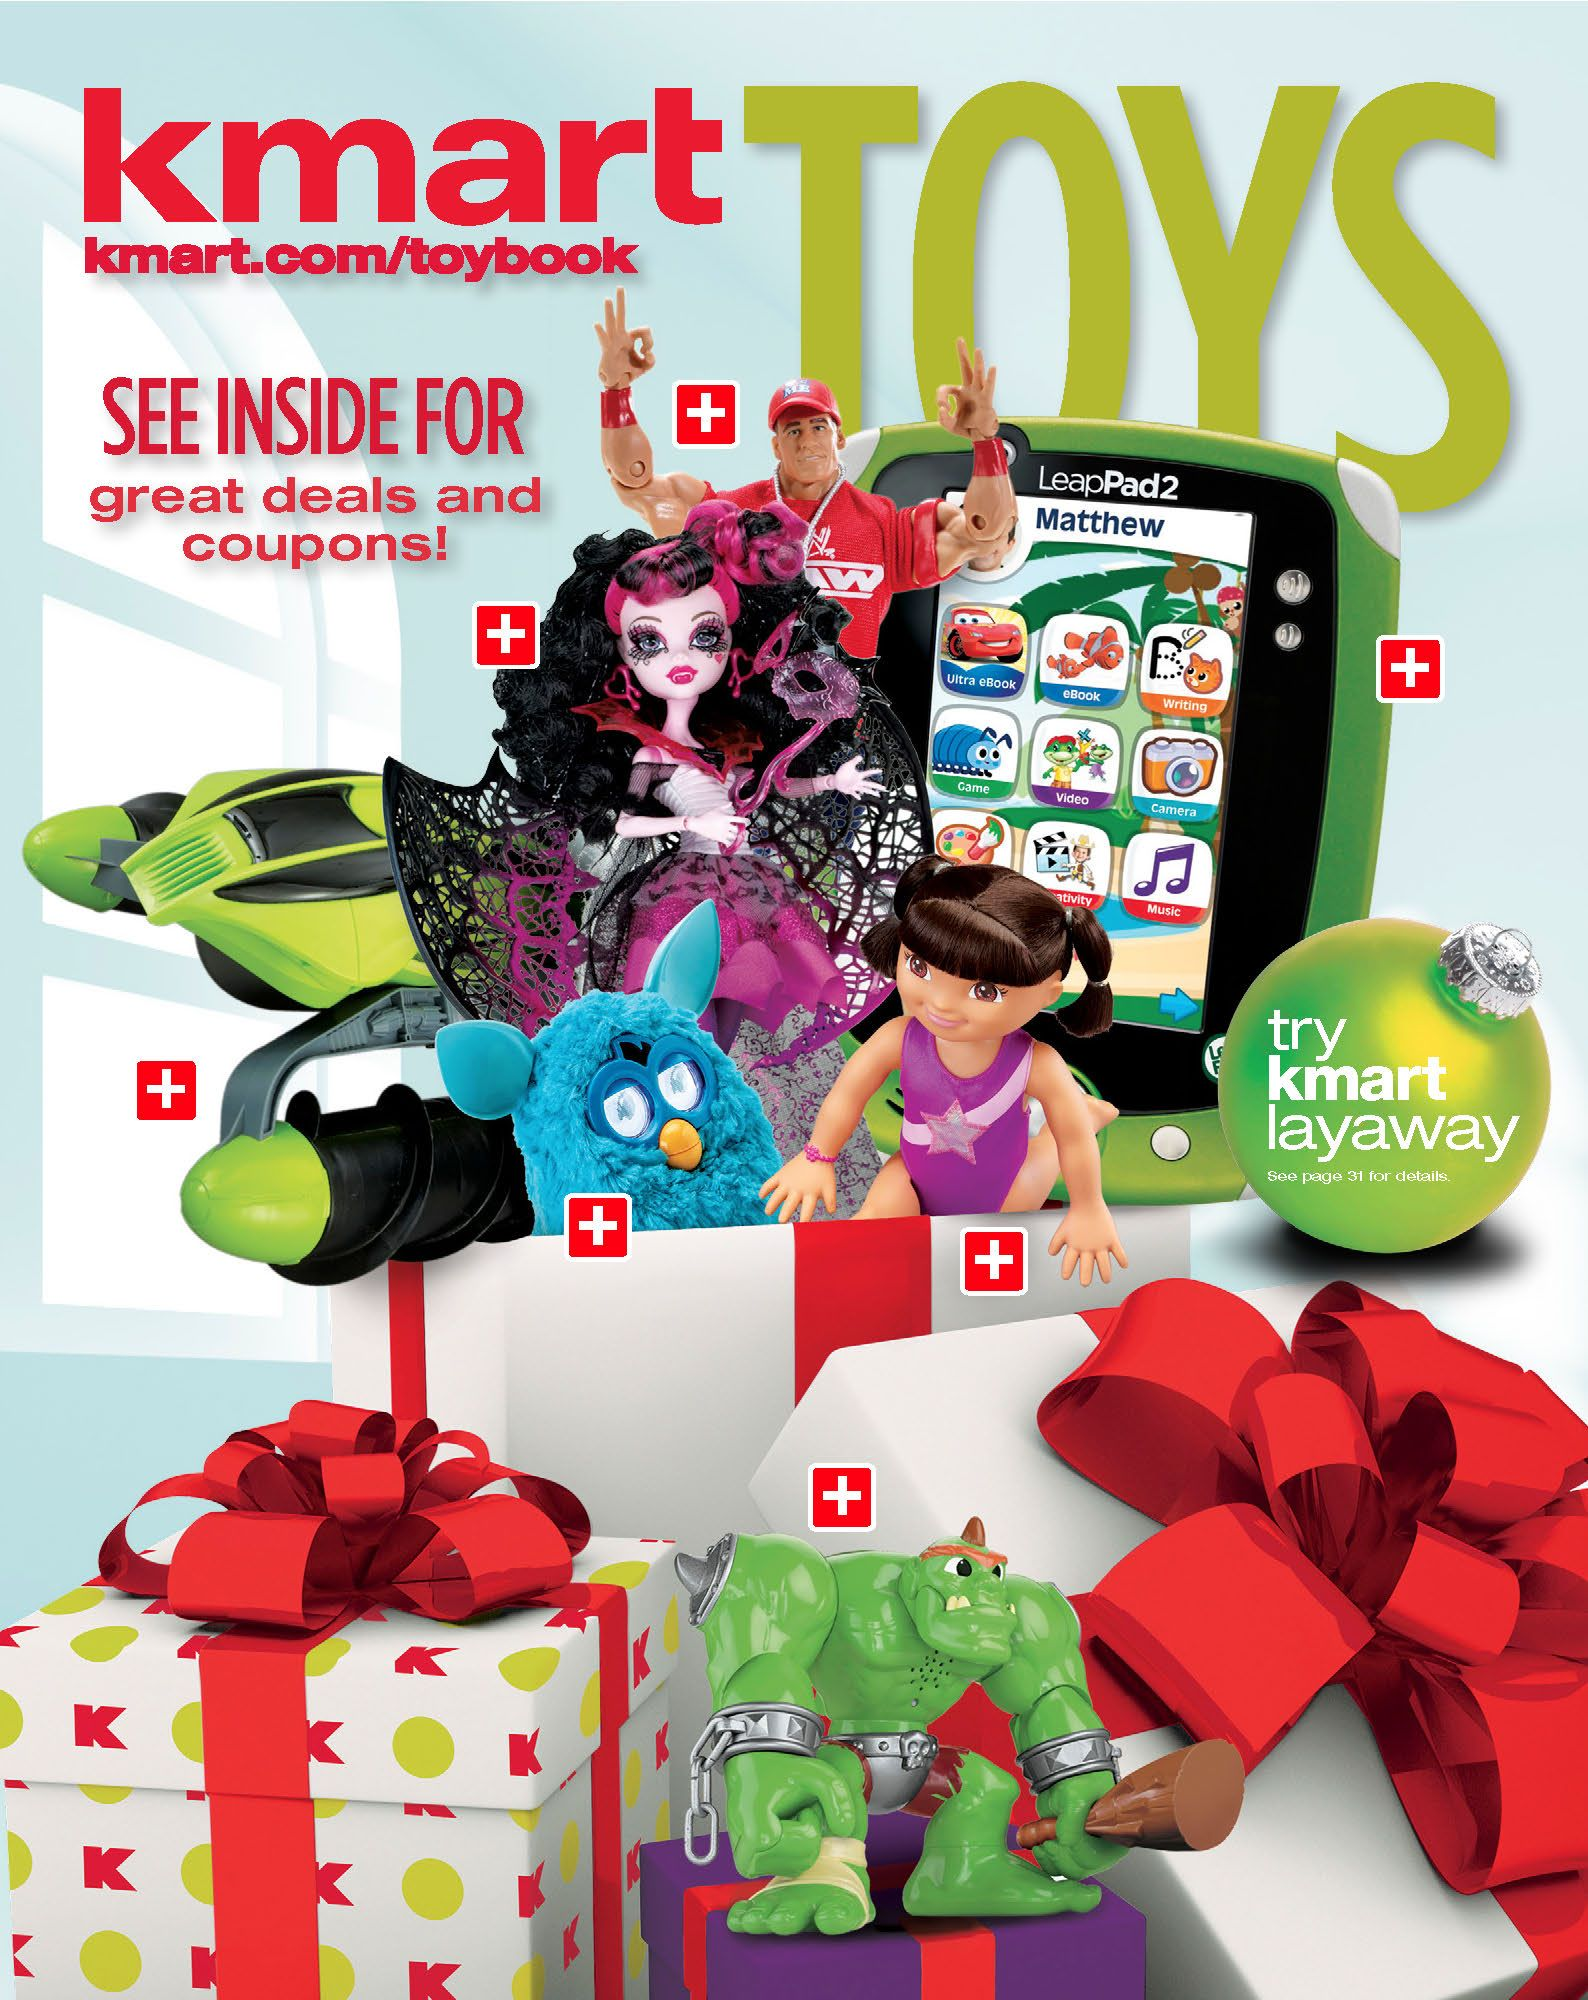 Kmart Christmas Toy Book 2020 Kmart Toy Book 2012   Black Friday | Christmas books, Toy catalogs